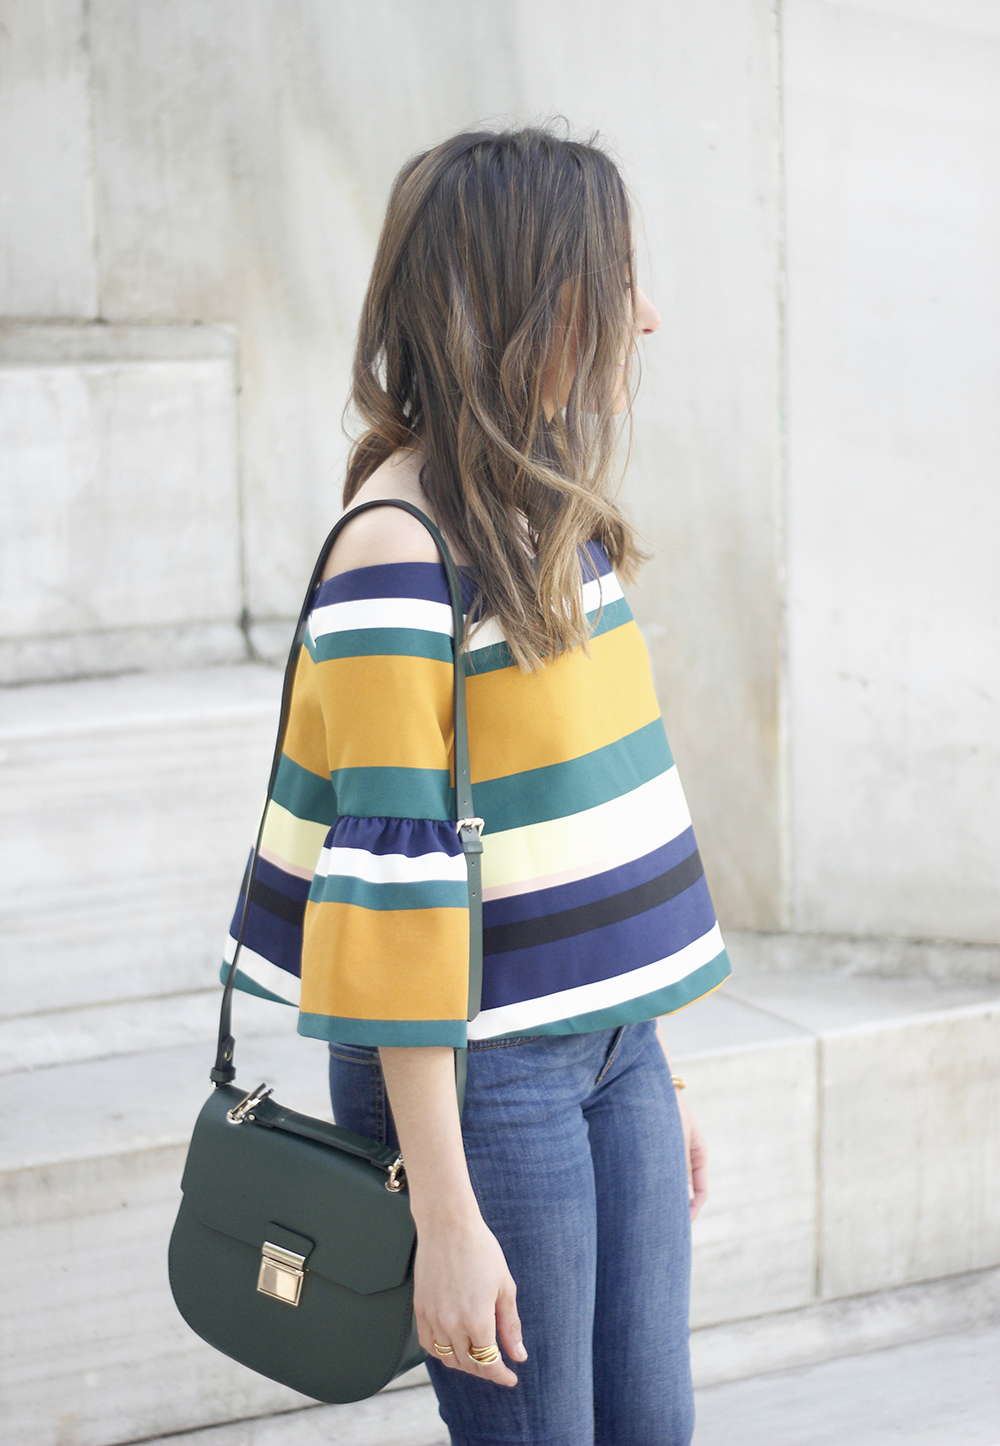 Off The Shoulder Top with stripes jeans heels accessories bag aristocrazy04